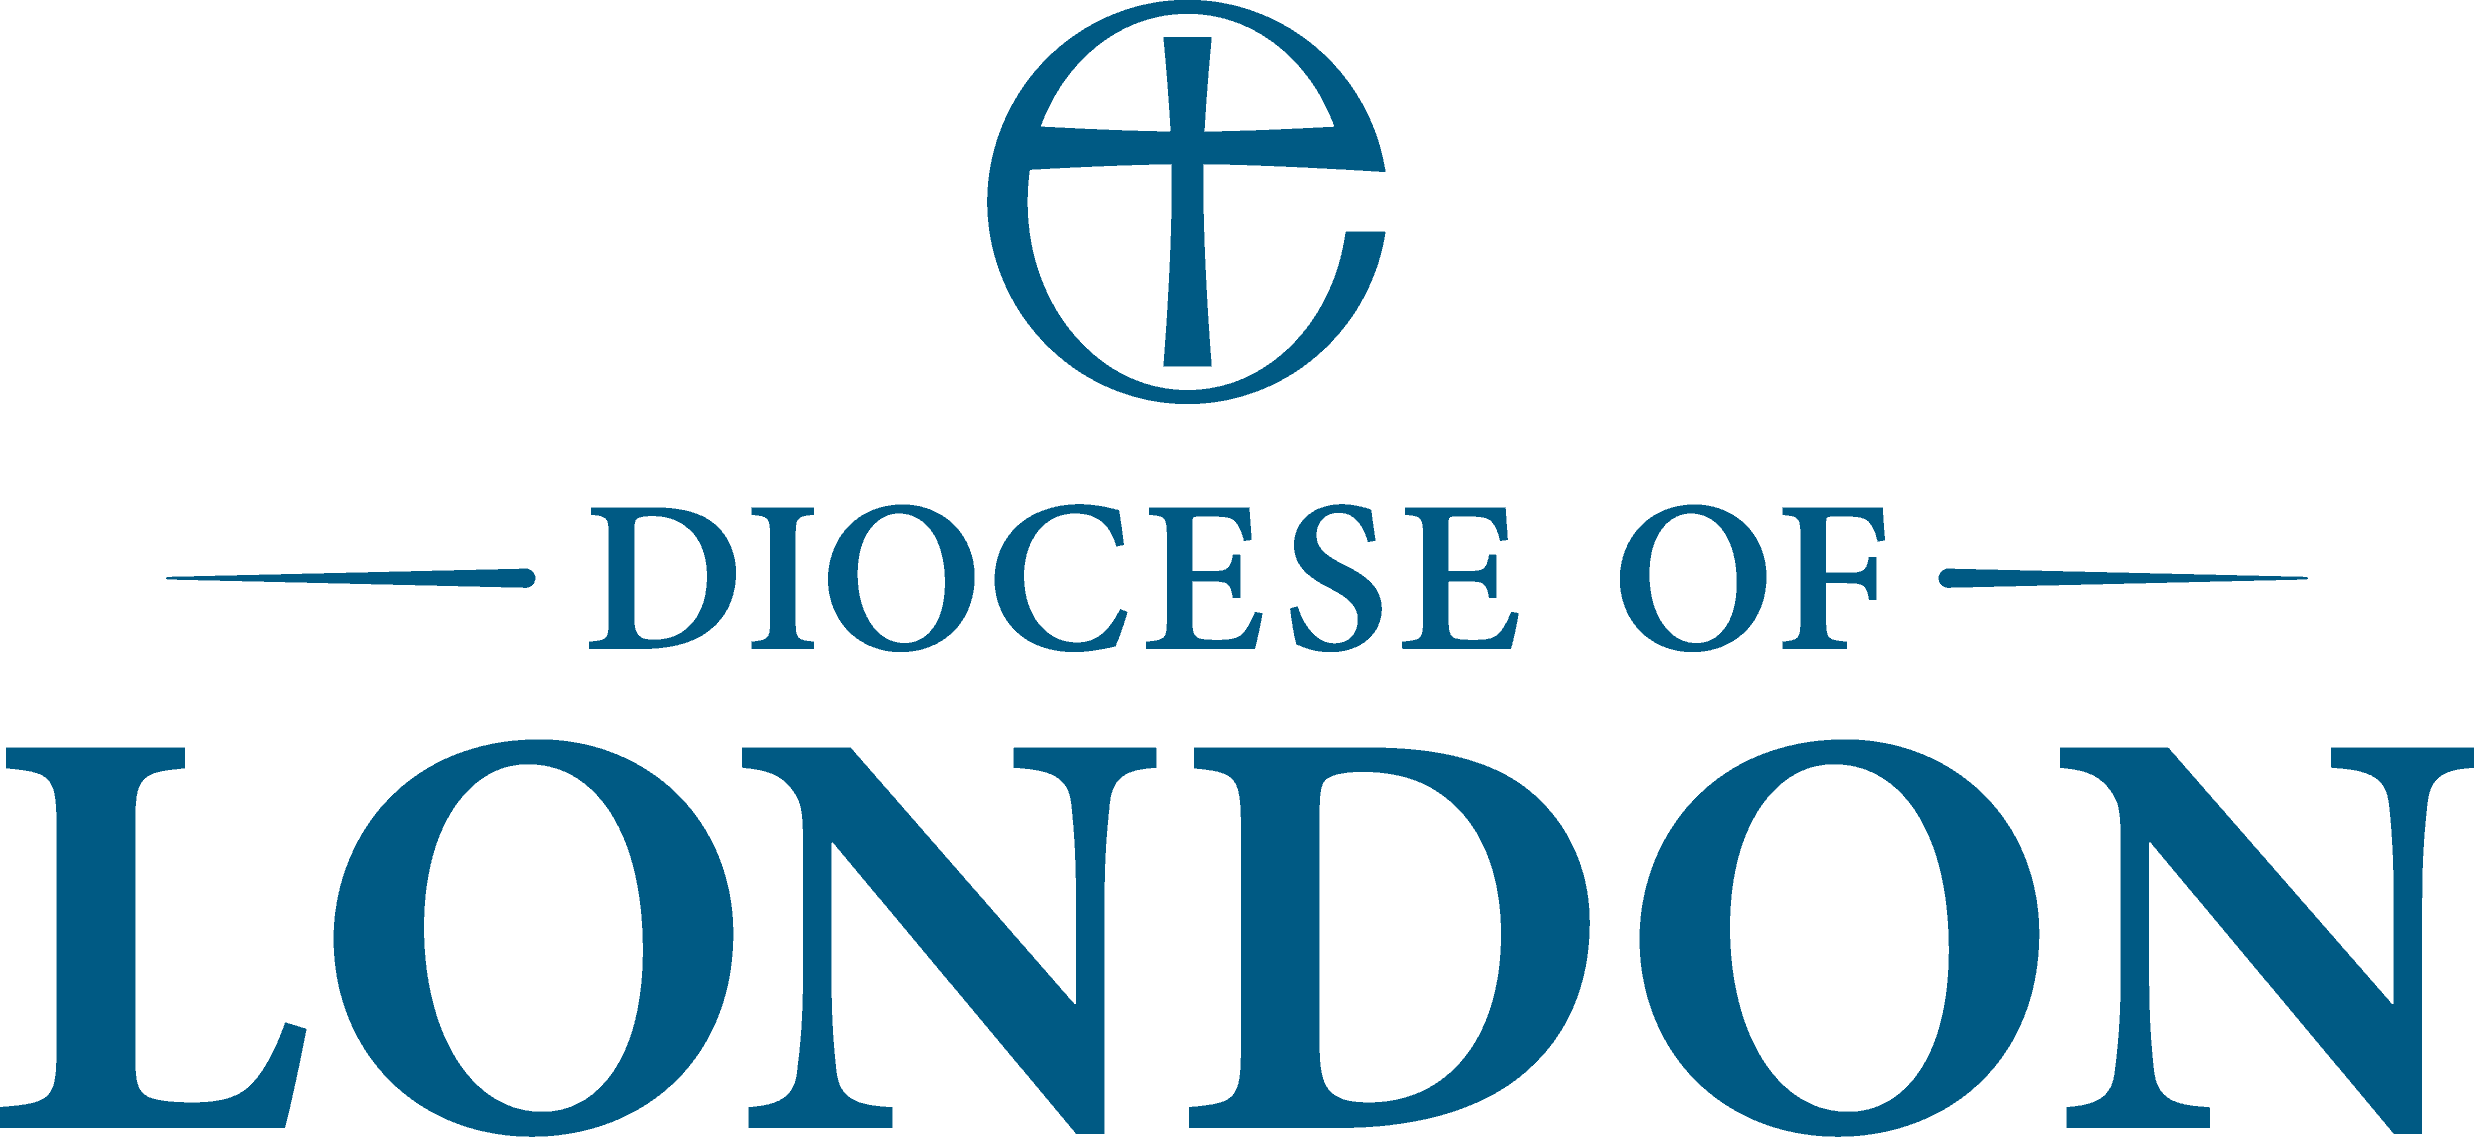 diocese-of-london-blue